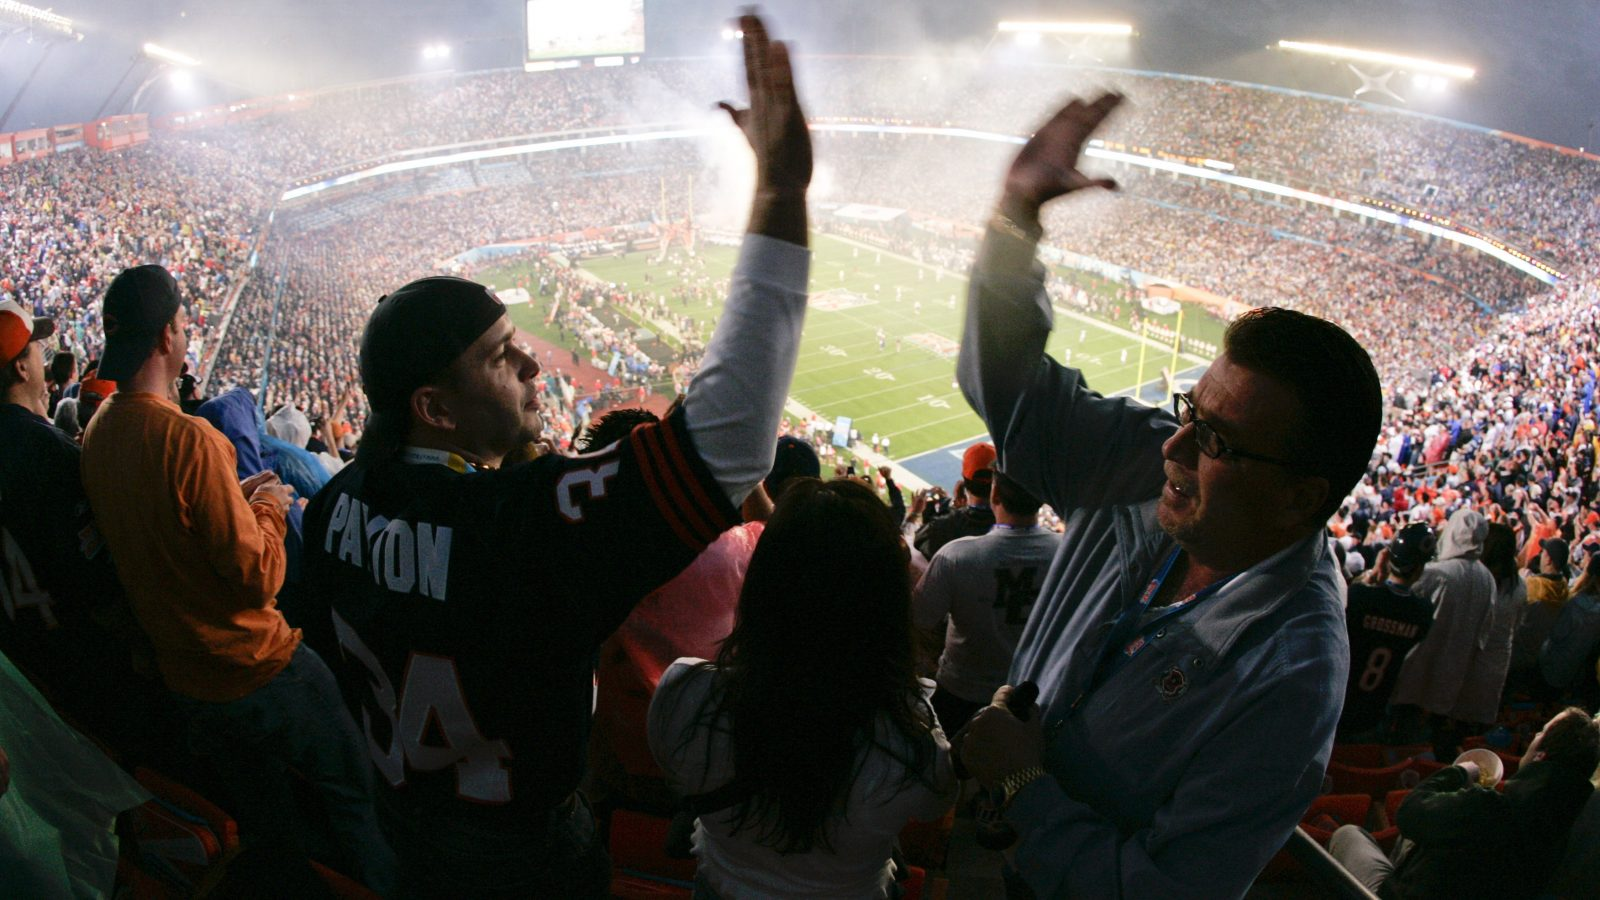 Chicago Bears fans high-five as they celebrate a touchdown during the first quarter of the Super Bowl XLI football game against the Indianapolis Colts at Dolphin Stadium in Miami, Sunday, Feb. 4, 2007. (AP Photo/Julie Jacobson)